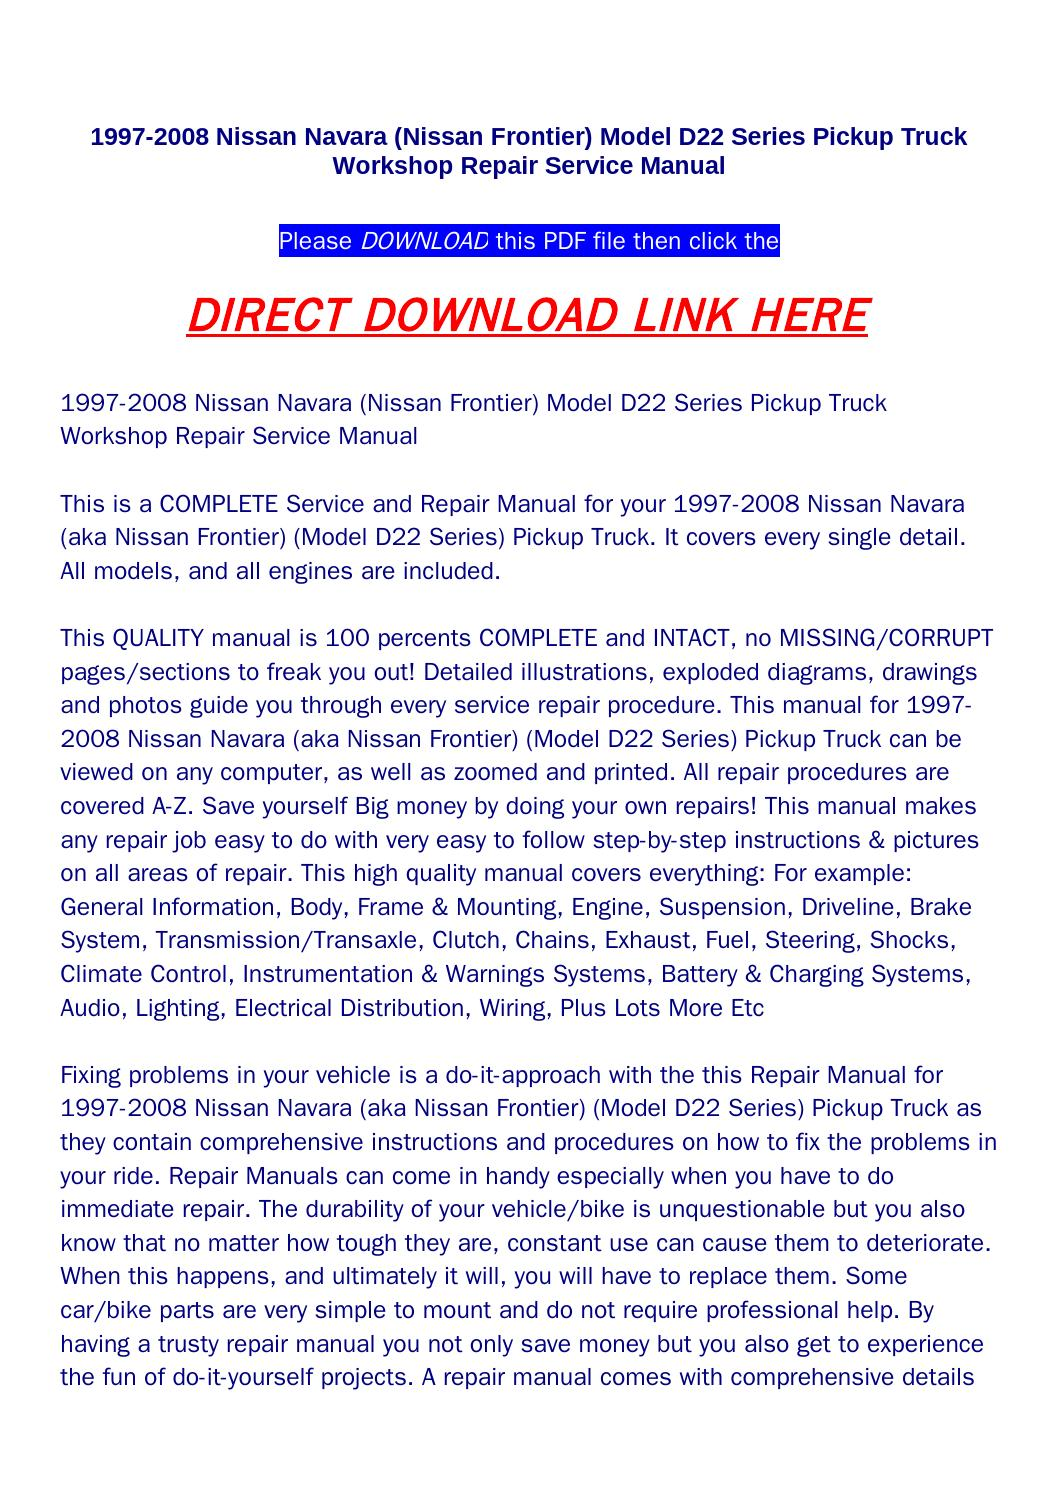 1997 2008 nissan navara (nissan frontier) model d22 series pickup truck workshop  repair service manu by bonus300 - issuu